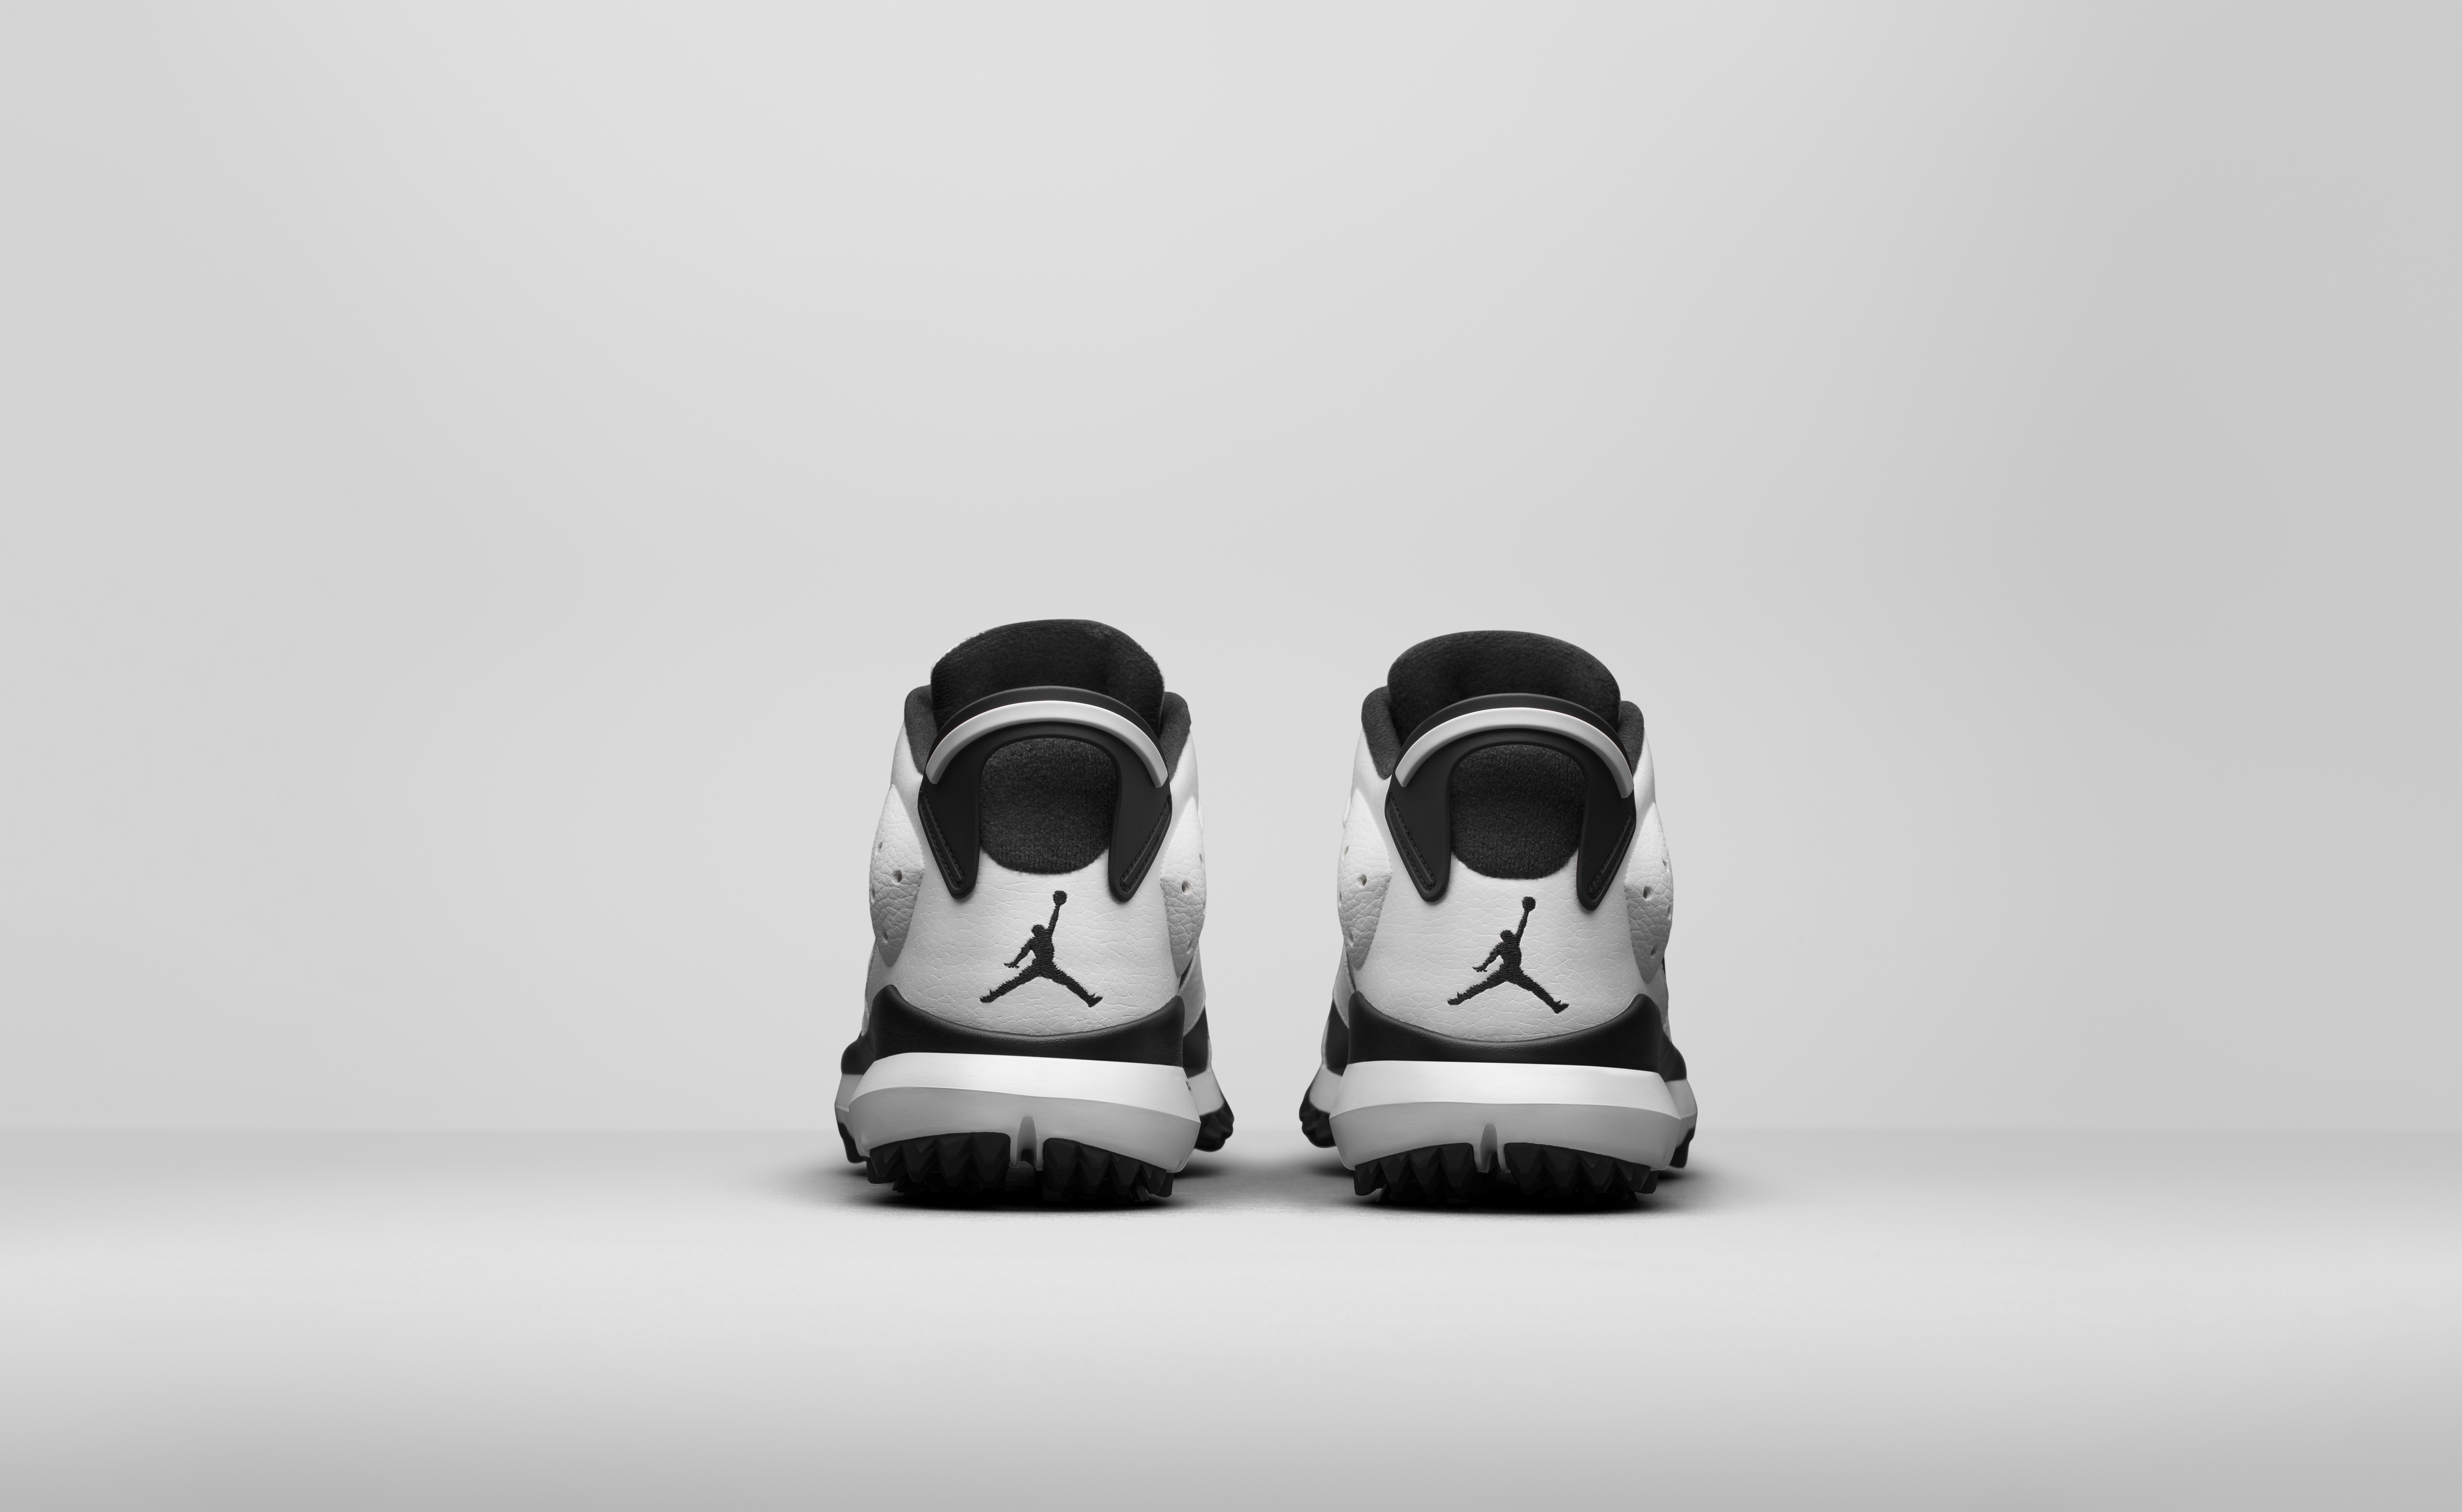 salomon veste ski femme - Nike News - Jordan Brand Introduces the Air Jordan VI Golf Shoe